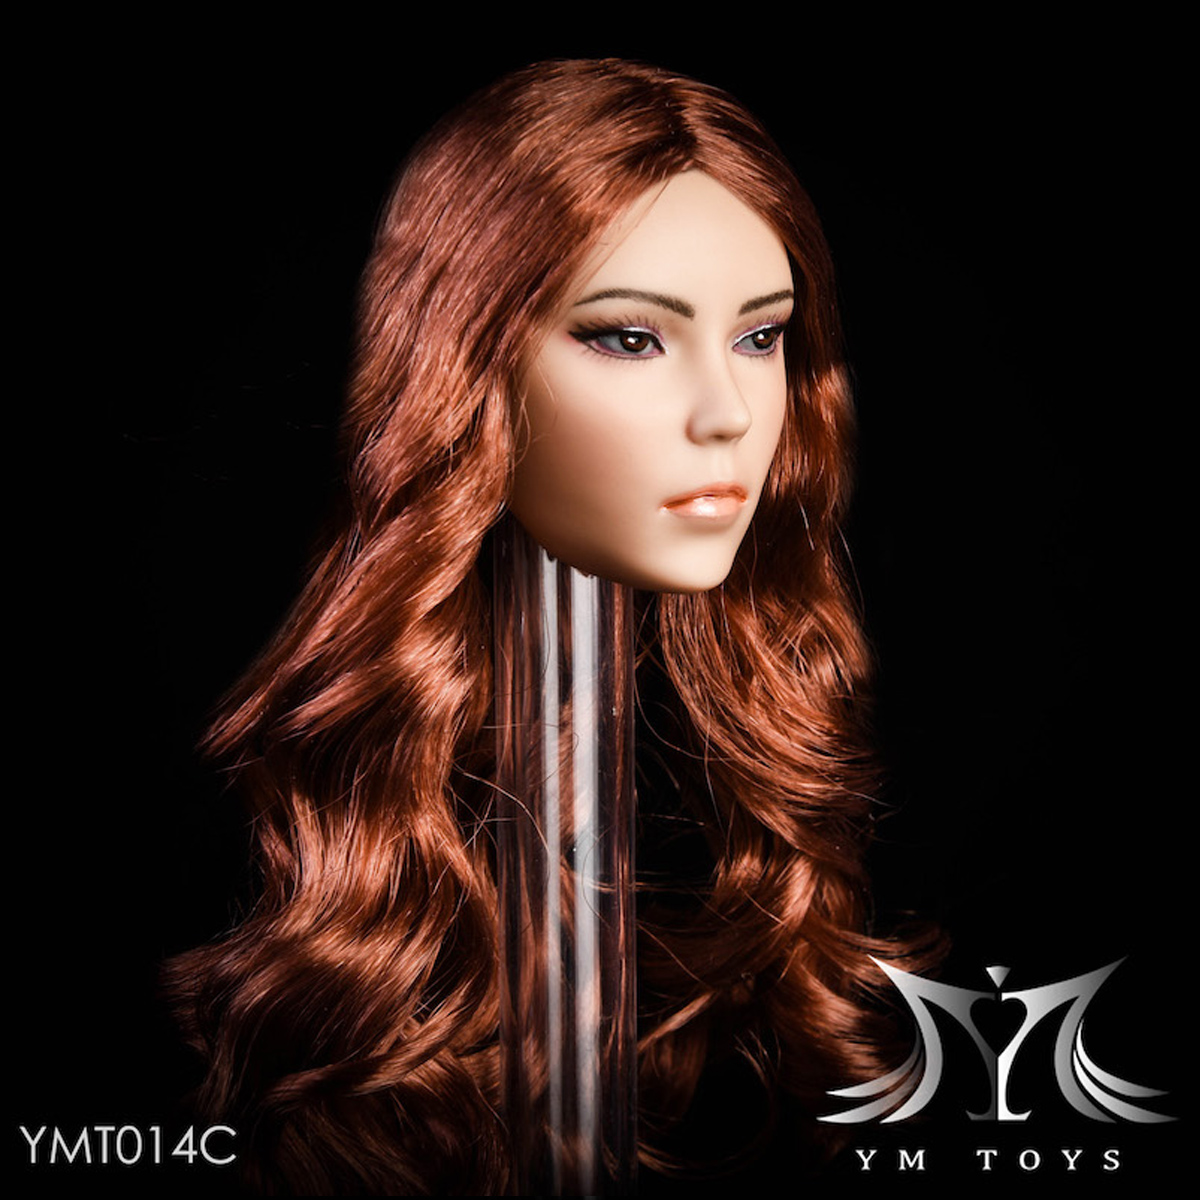 YMTOYS 1//6 YMT014B Female Head Carved Head Model Figure Collection